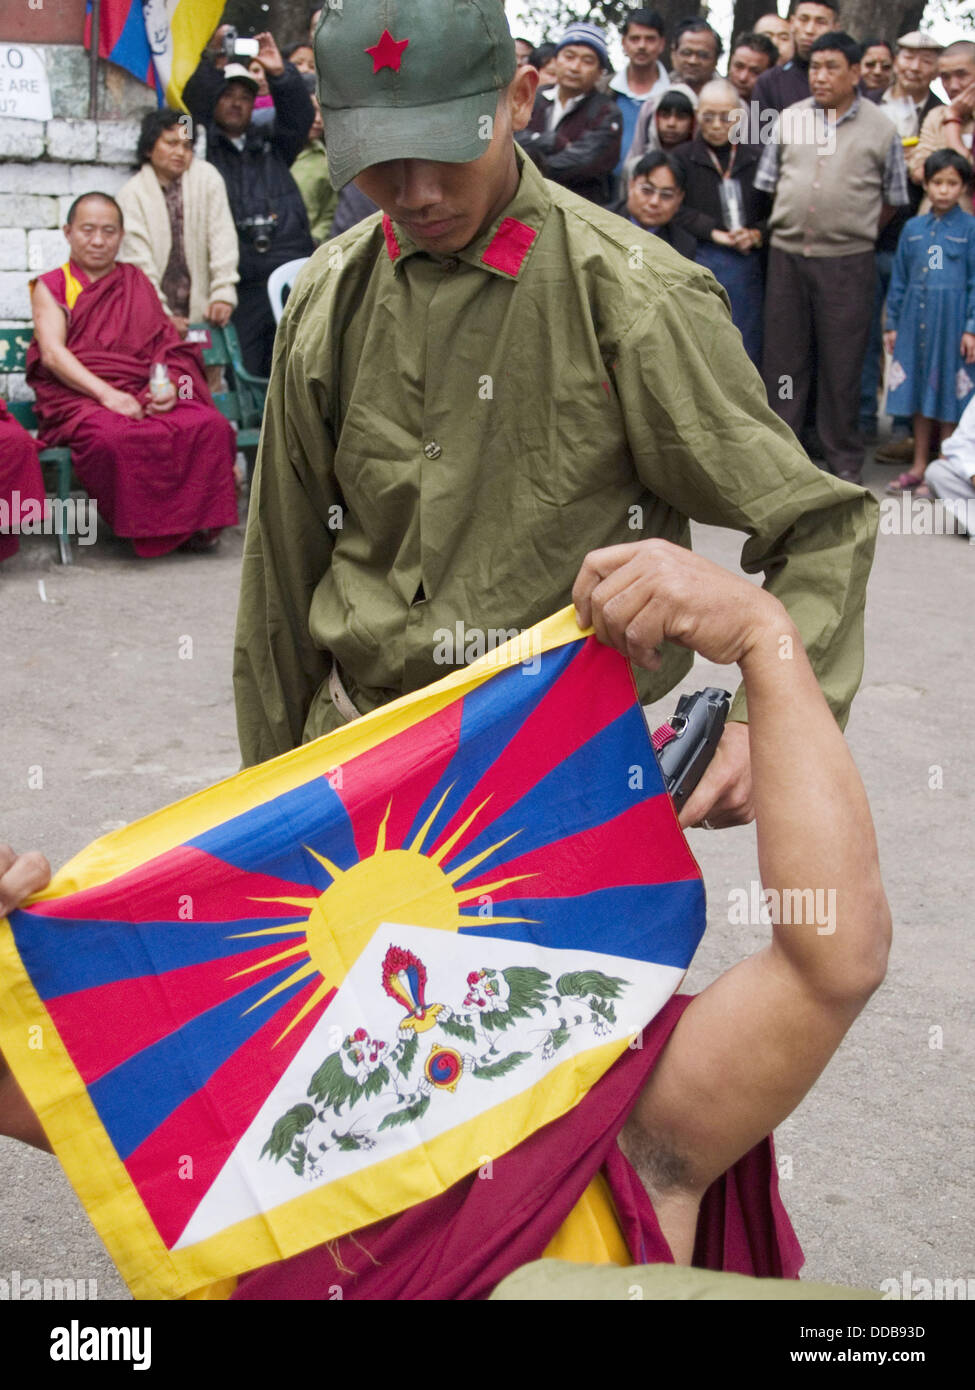 Tibetans mocking Chinese brutality at rally in Darjeeling India - Stock Image